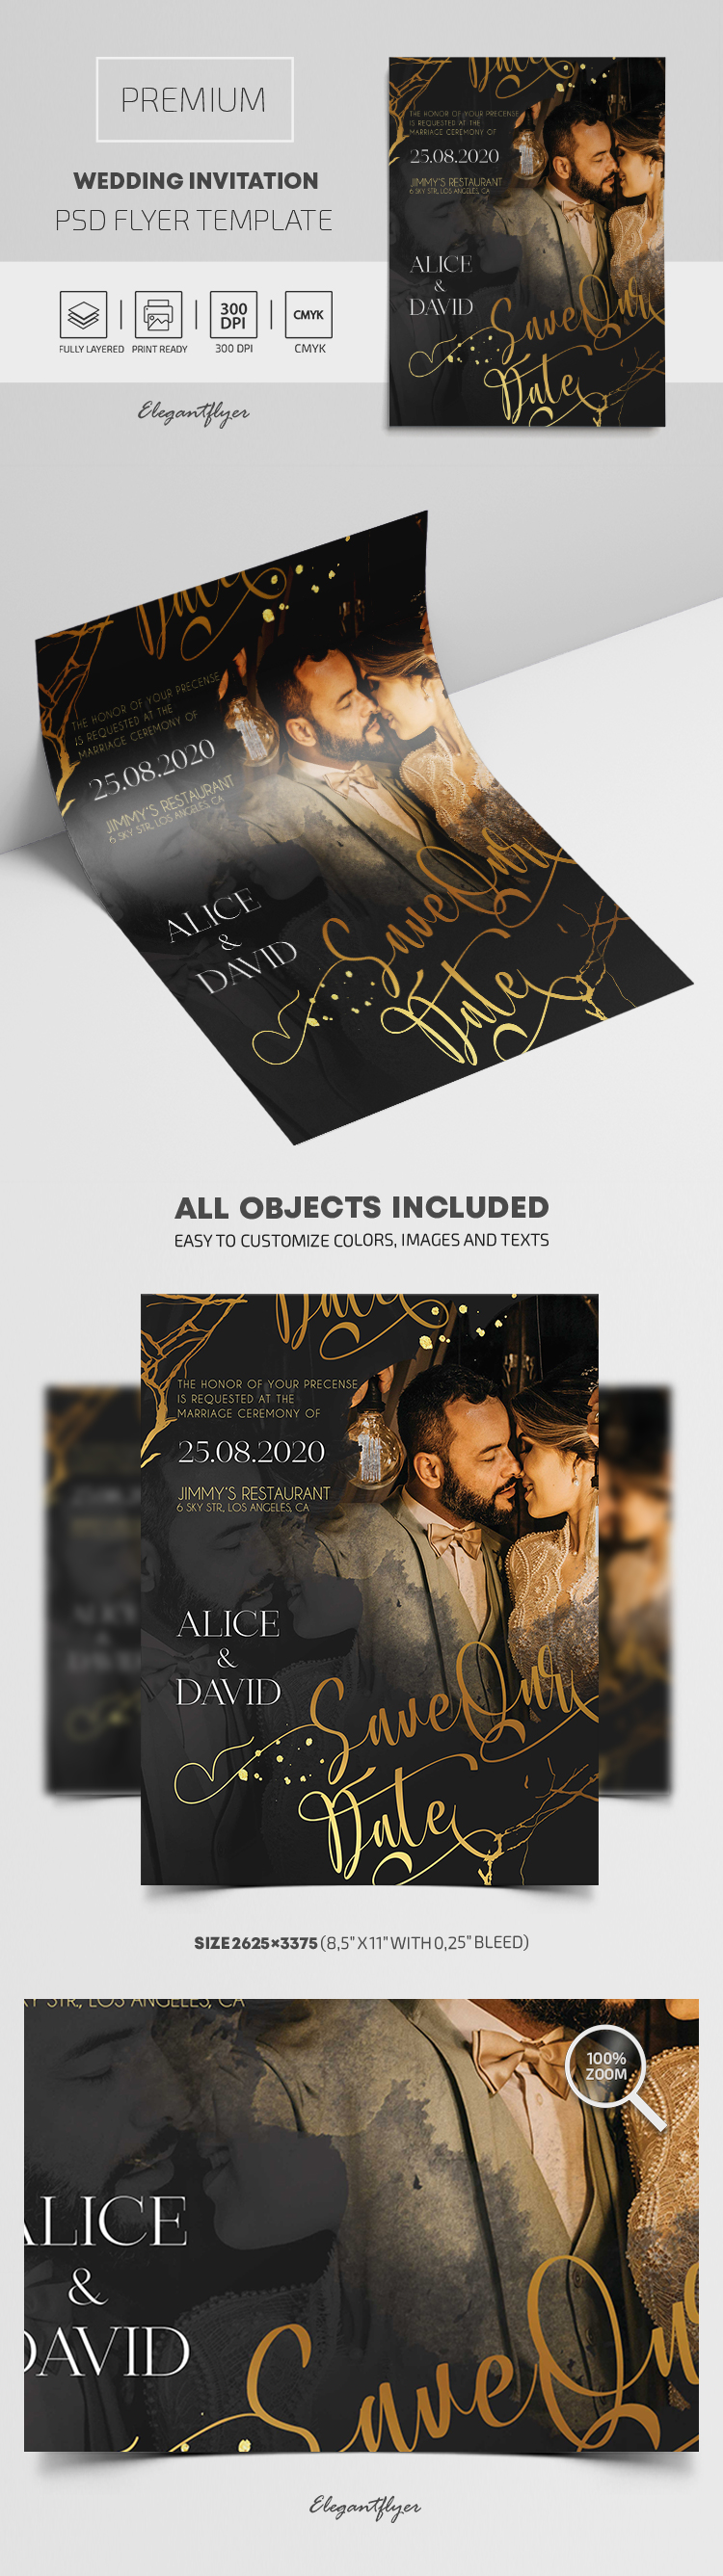 Premium Wedding Invitation PSD Template